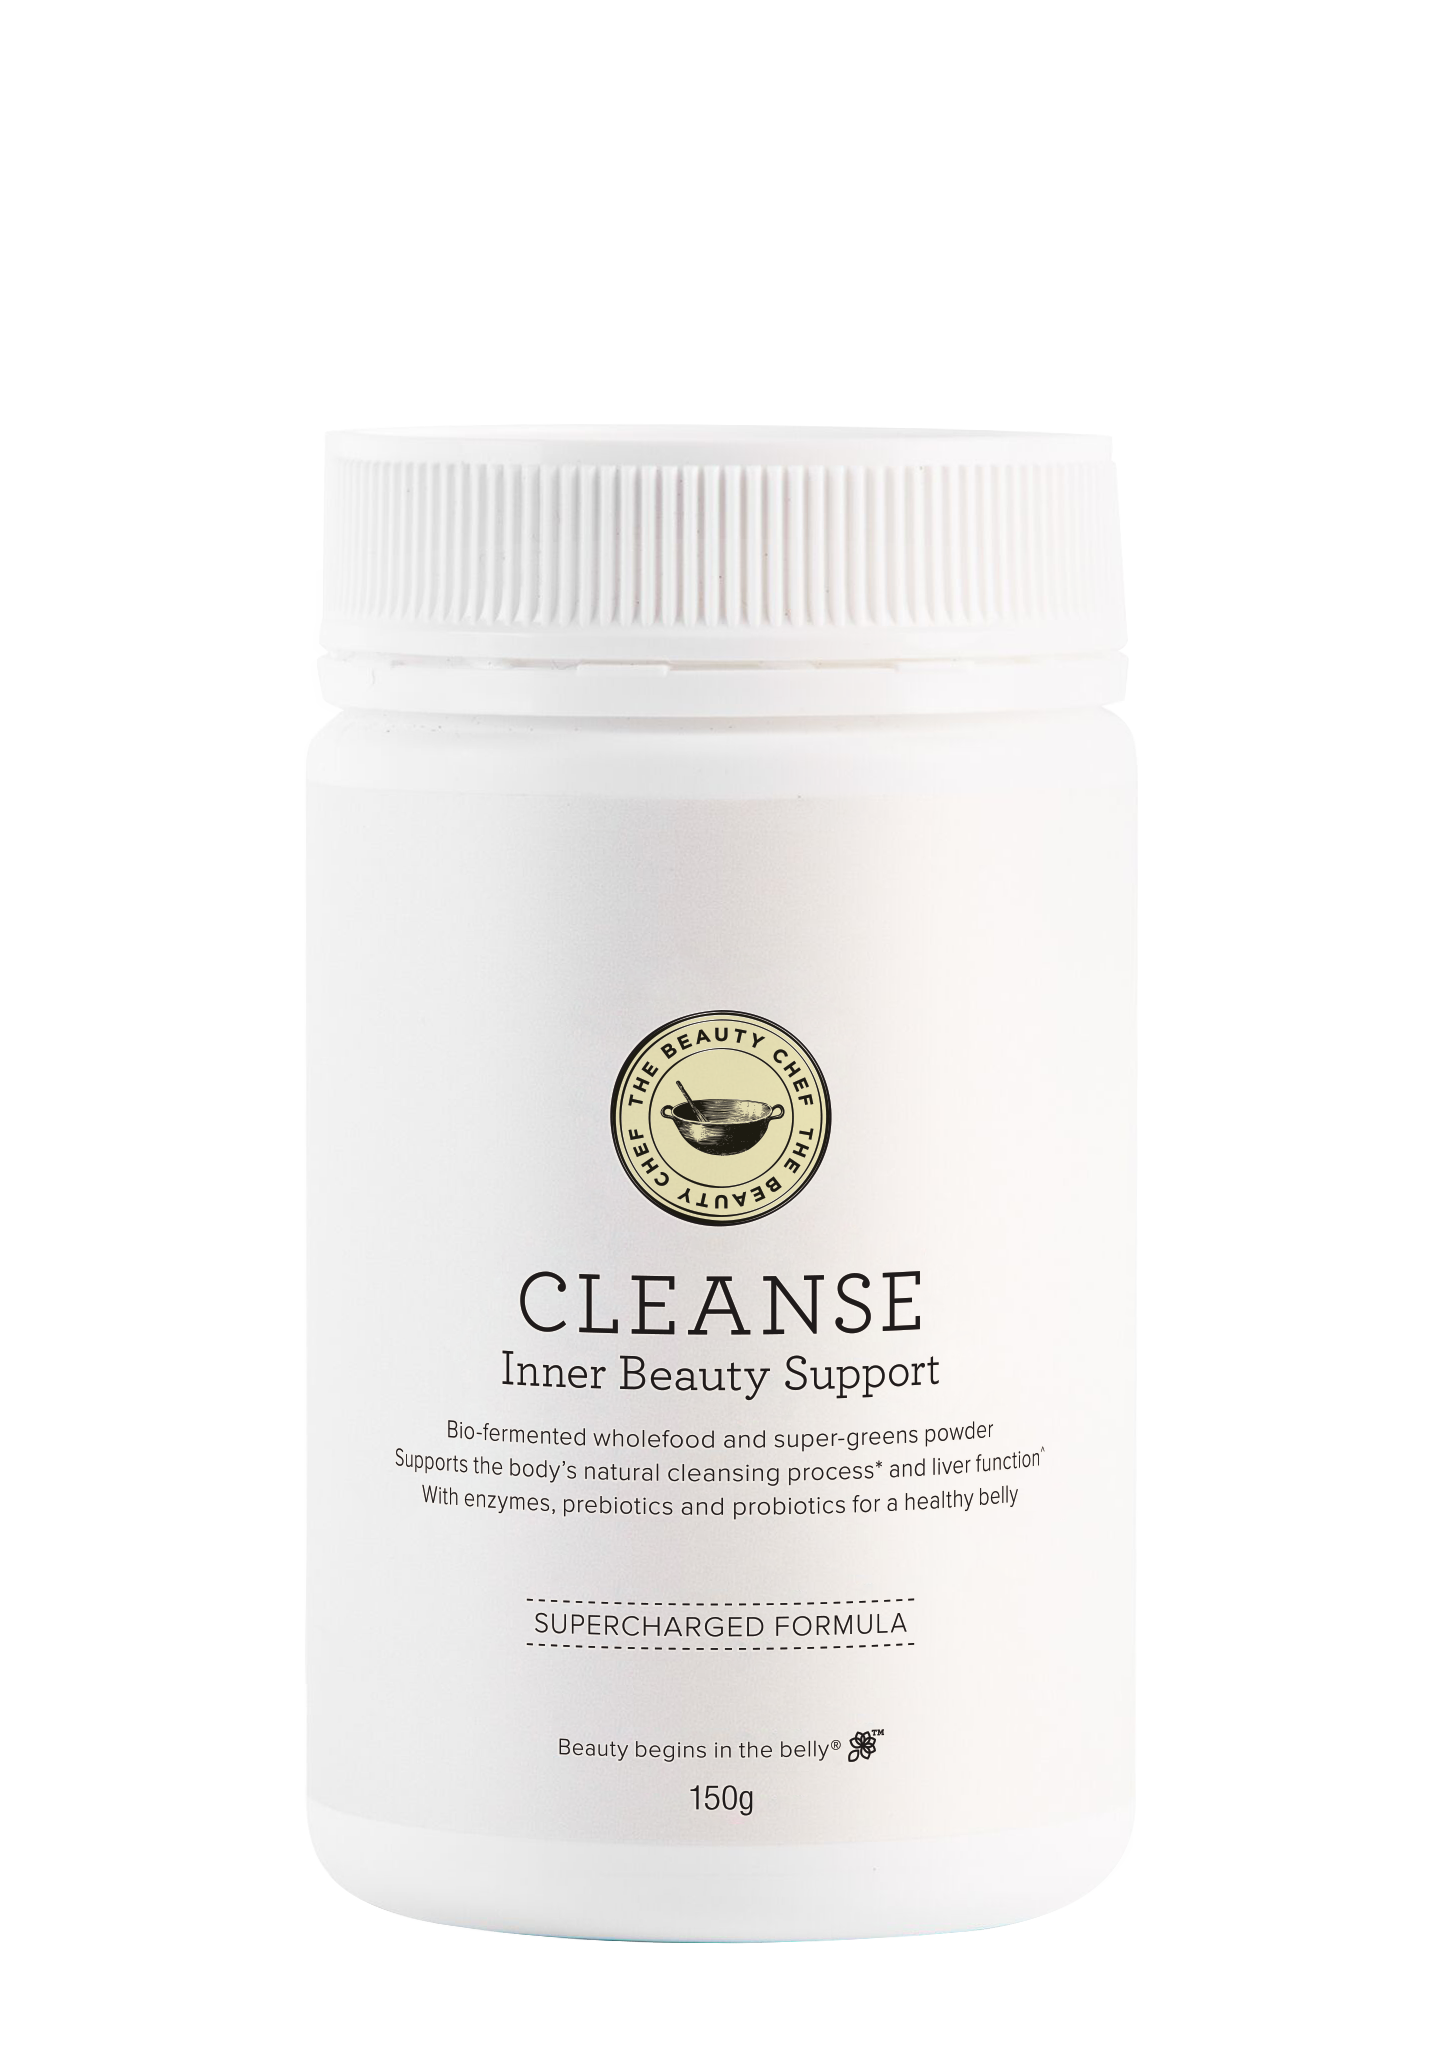 NEW CLEANSE Inner Beauty Support Bundle Offer